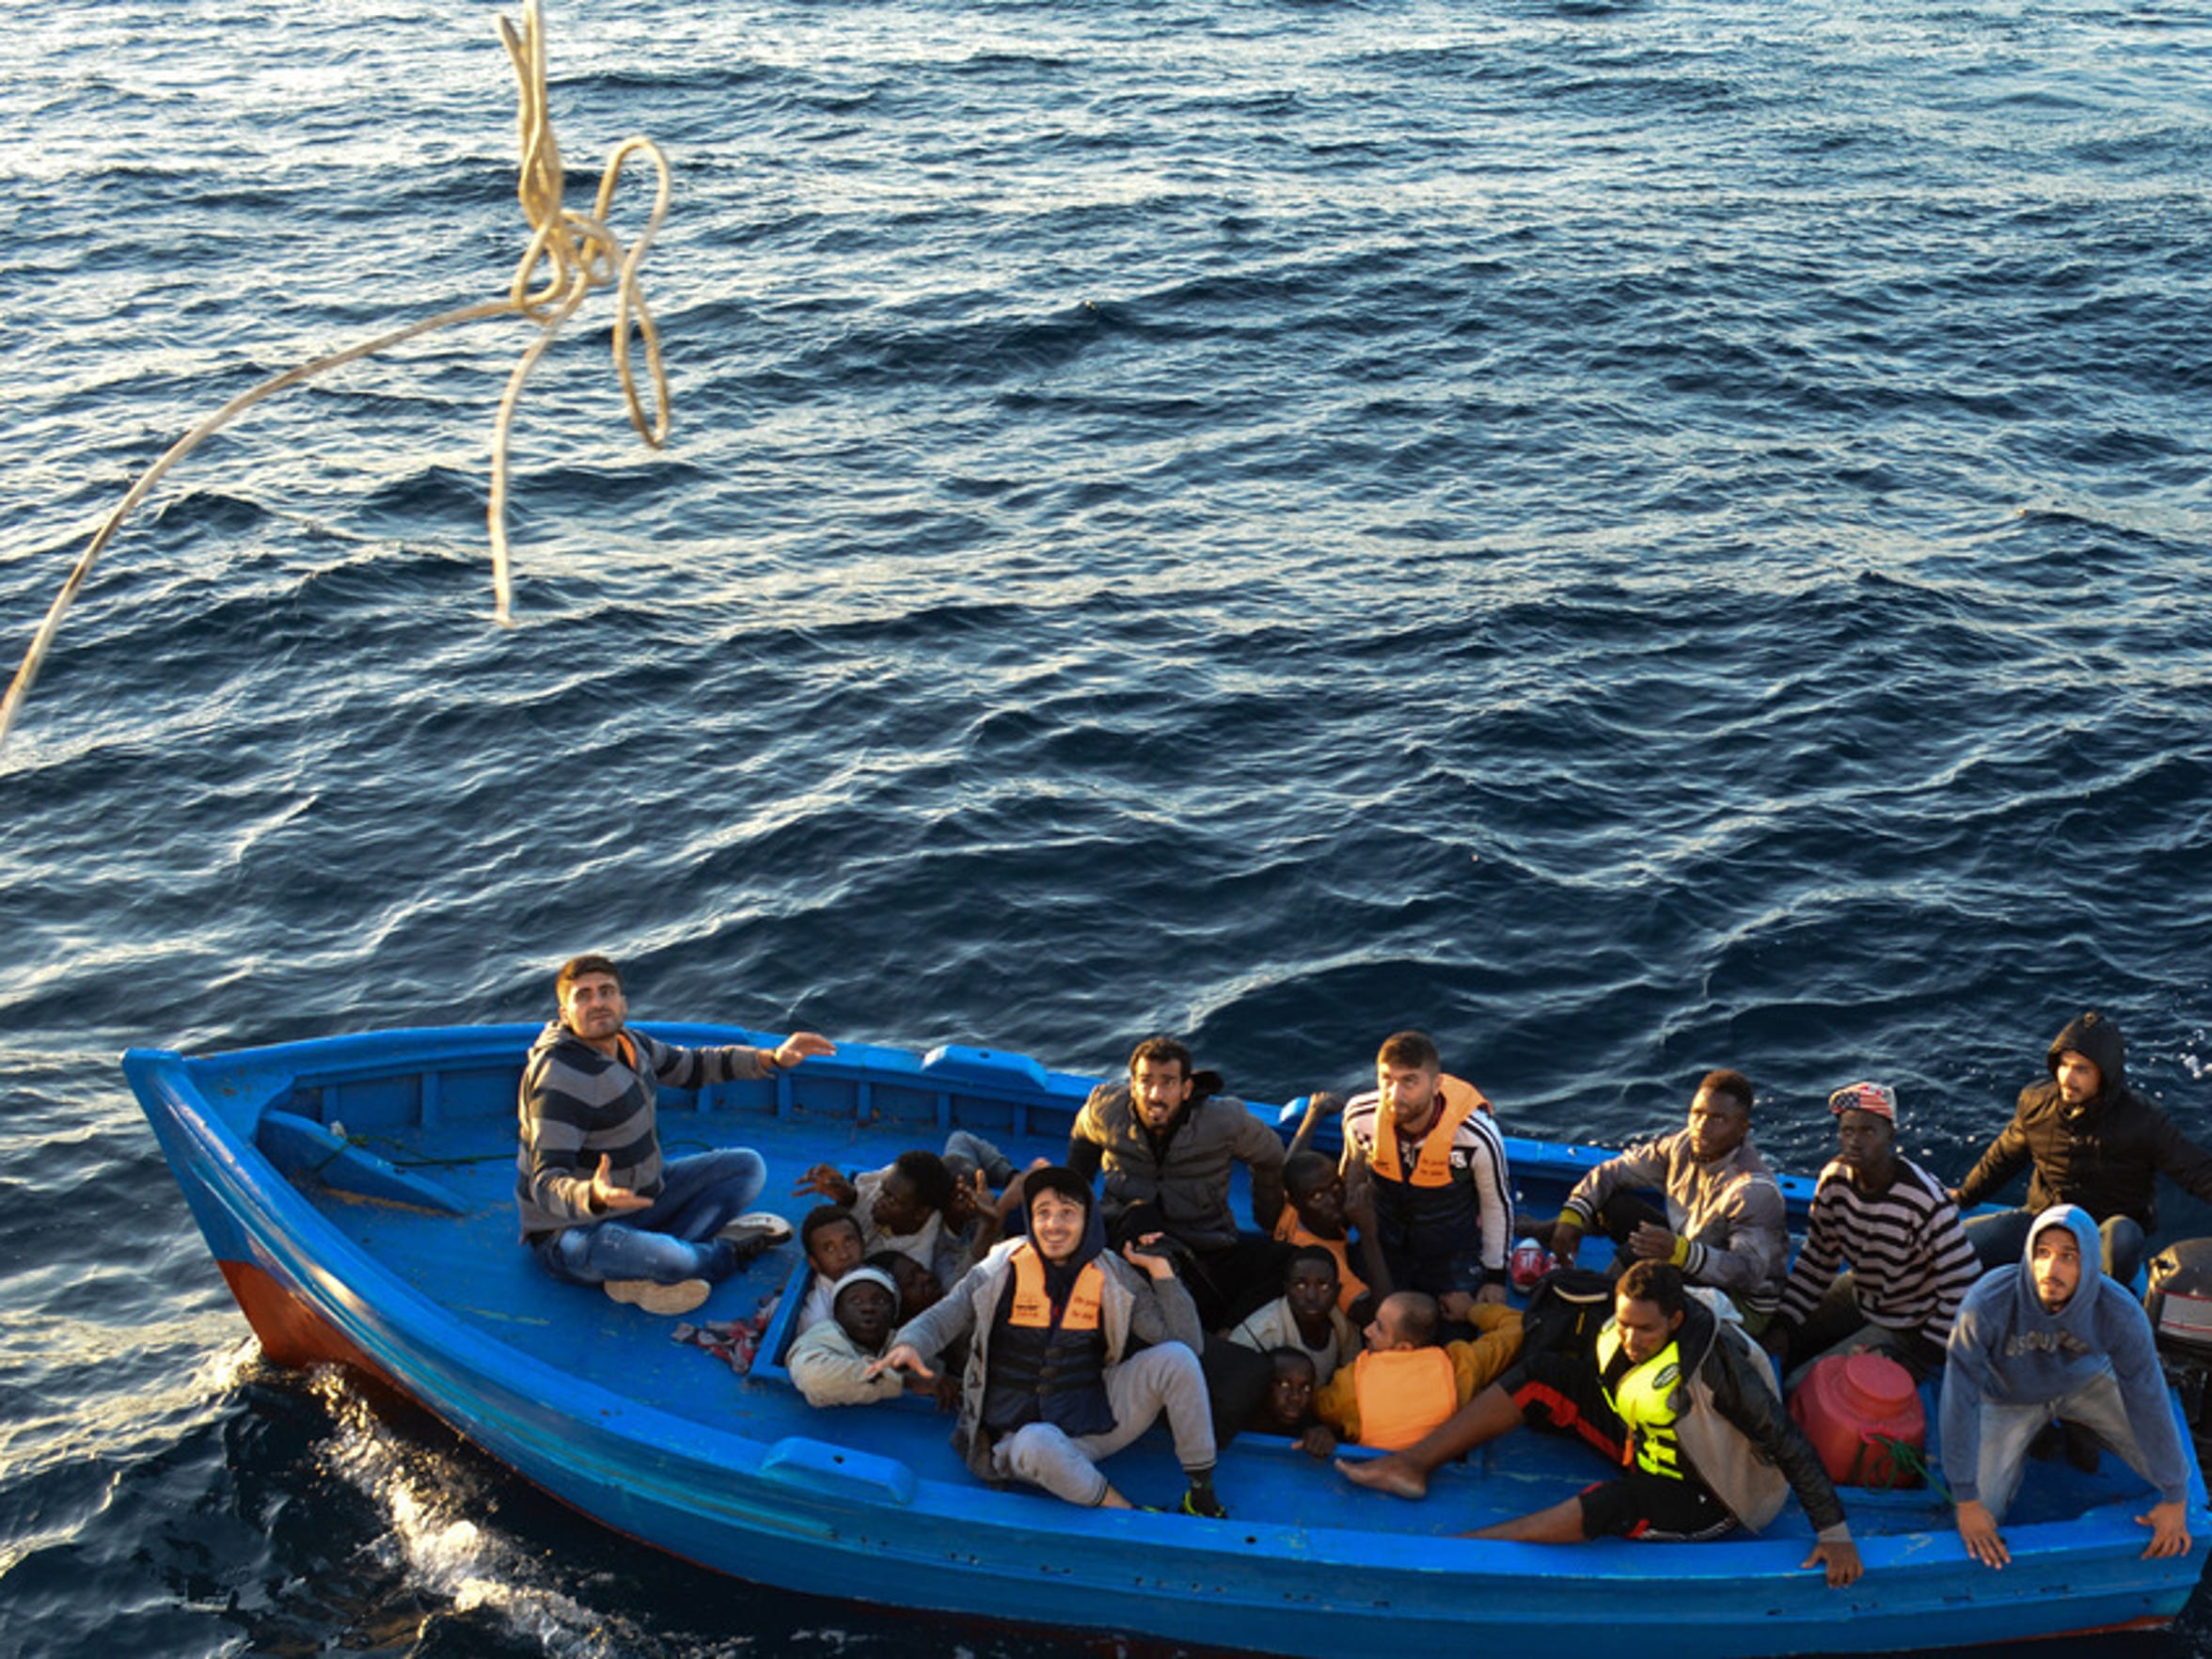 People crammed in a small wooden boat on the Mediterranean